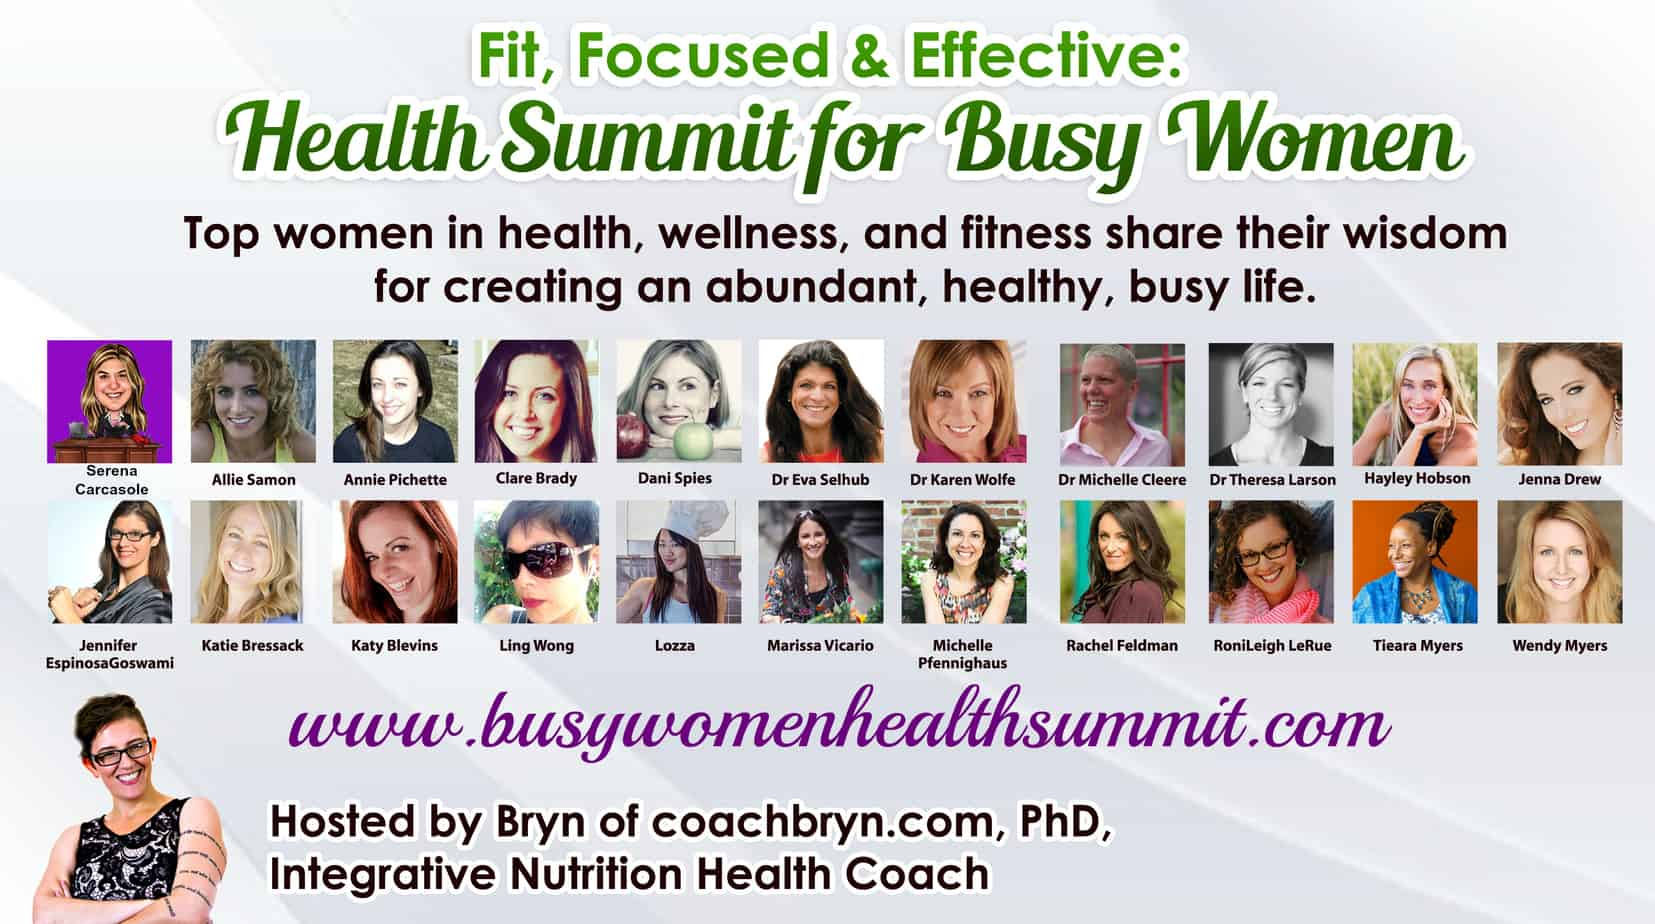 Fit, Focused & Effective: Health Summit for Busy Women